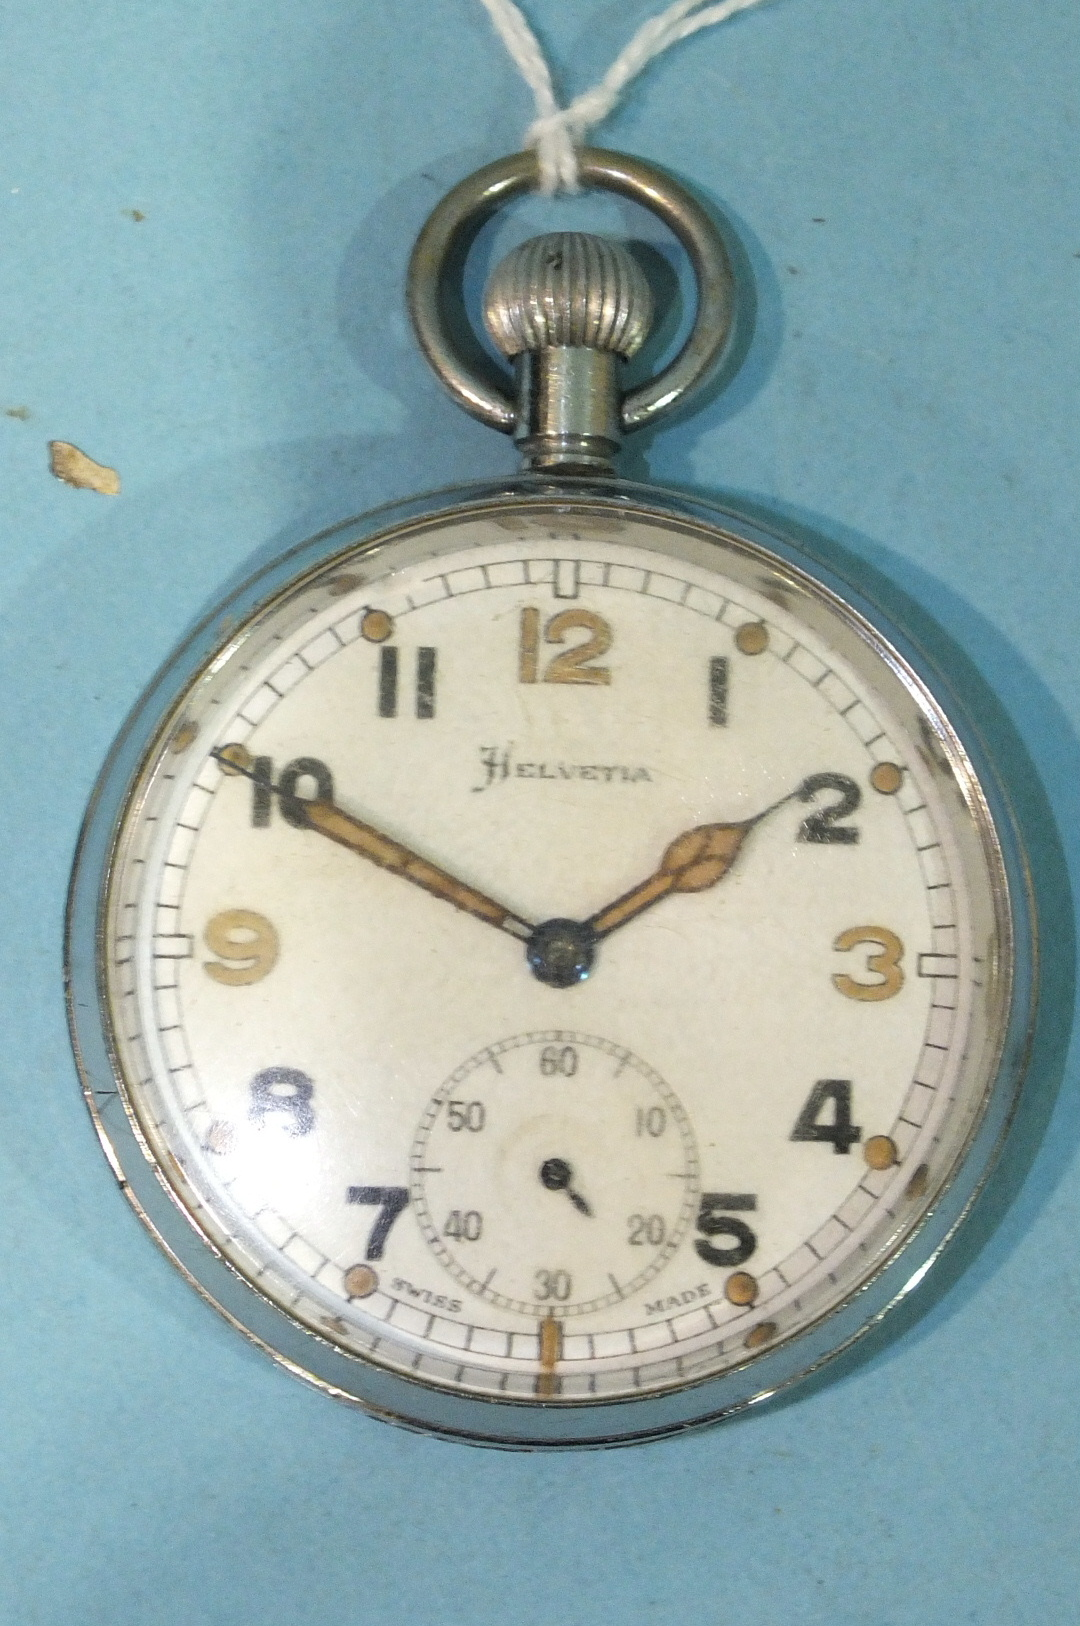 Lot 307 - A Helvetia keyless military pocket watch marked 'GSTP/G 26168'.